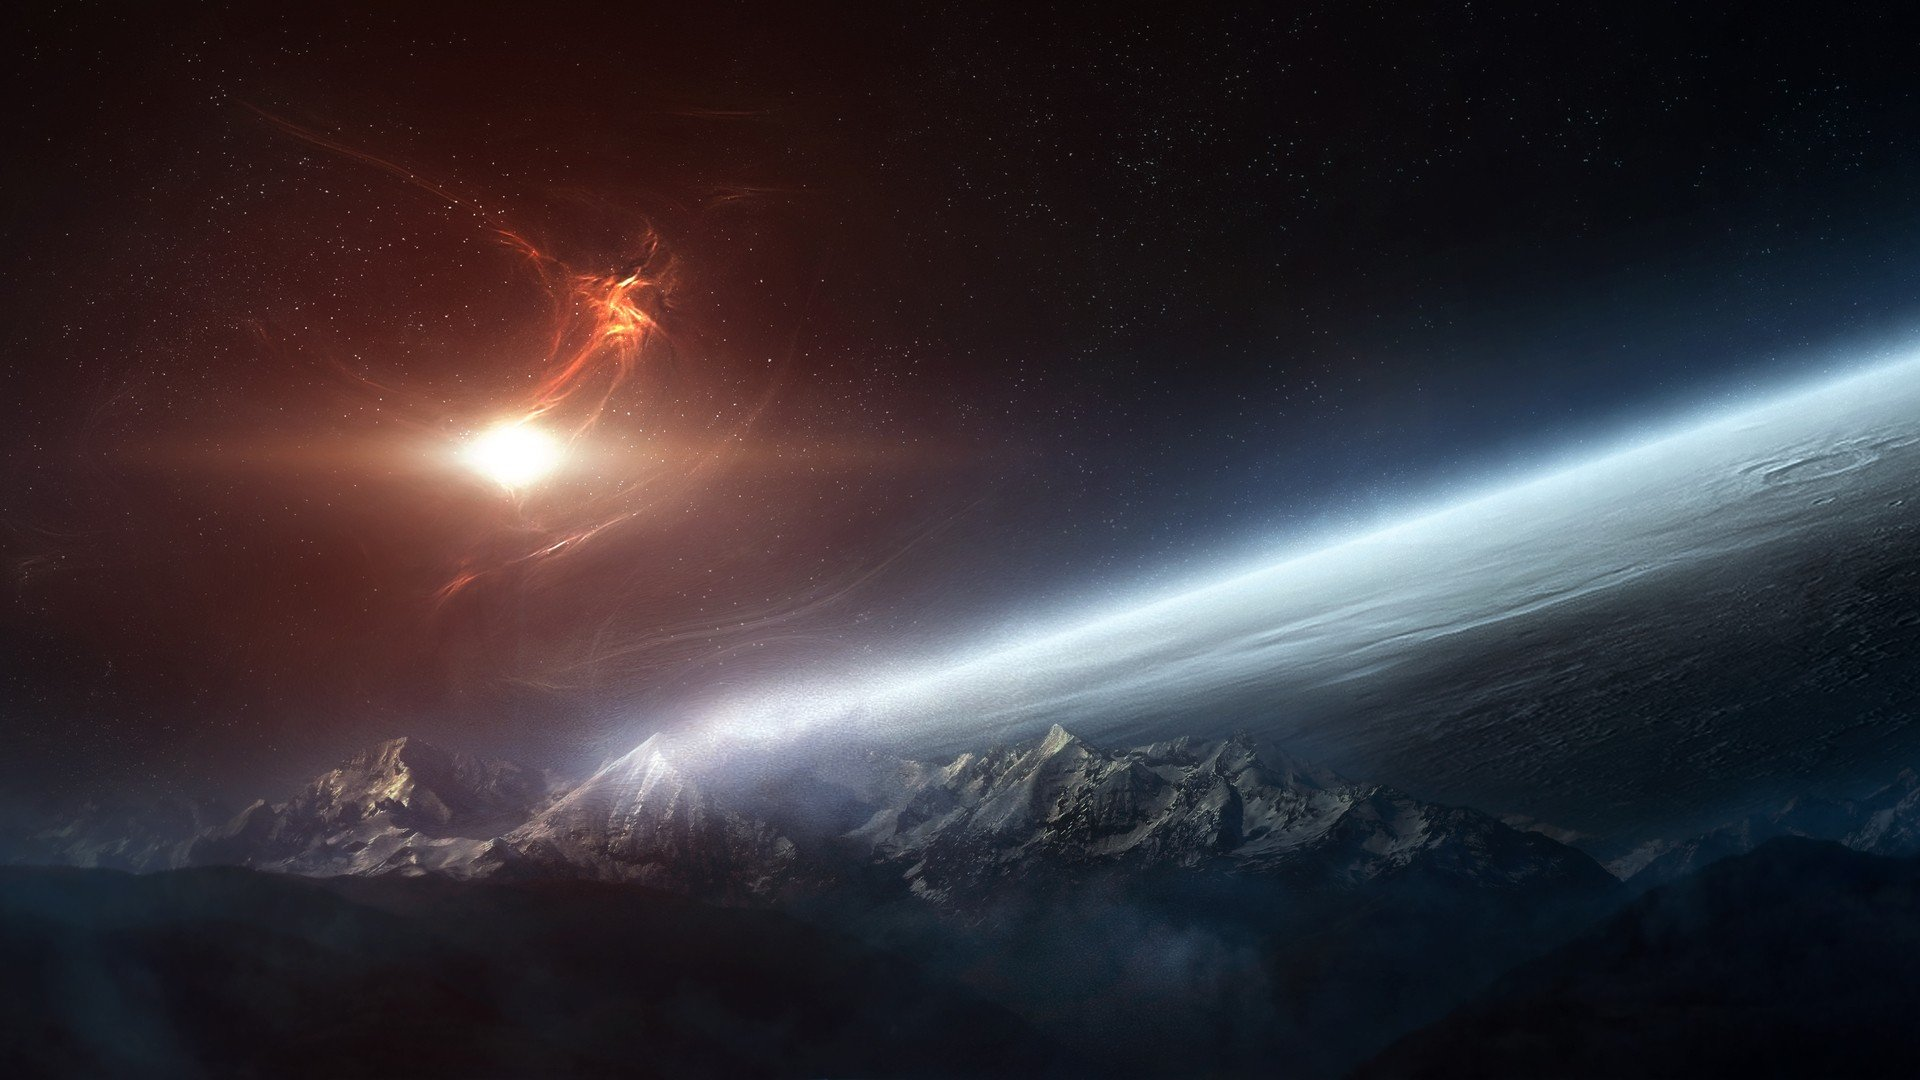 Mountains Outer Space HD Wallpaper FullHDWpp   Full HD 1920x1080